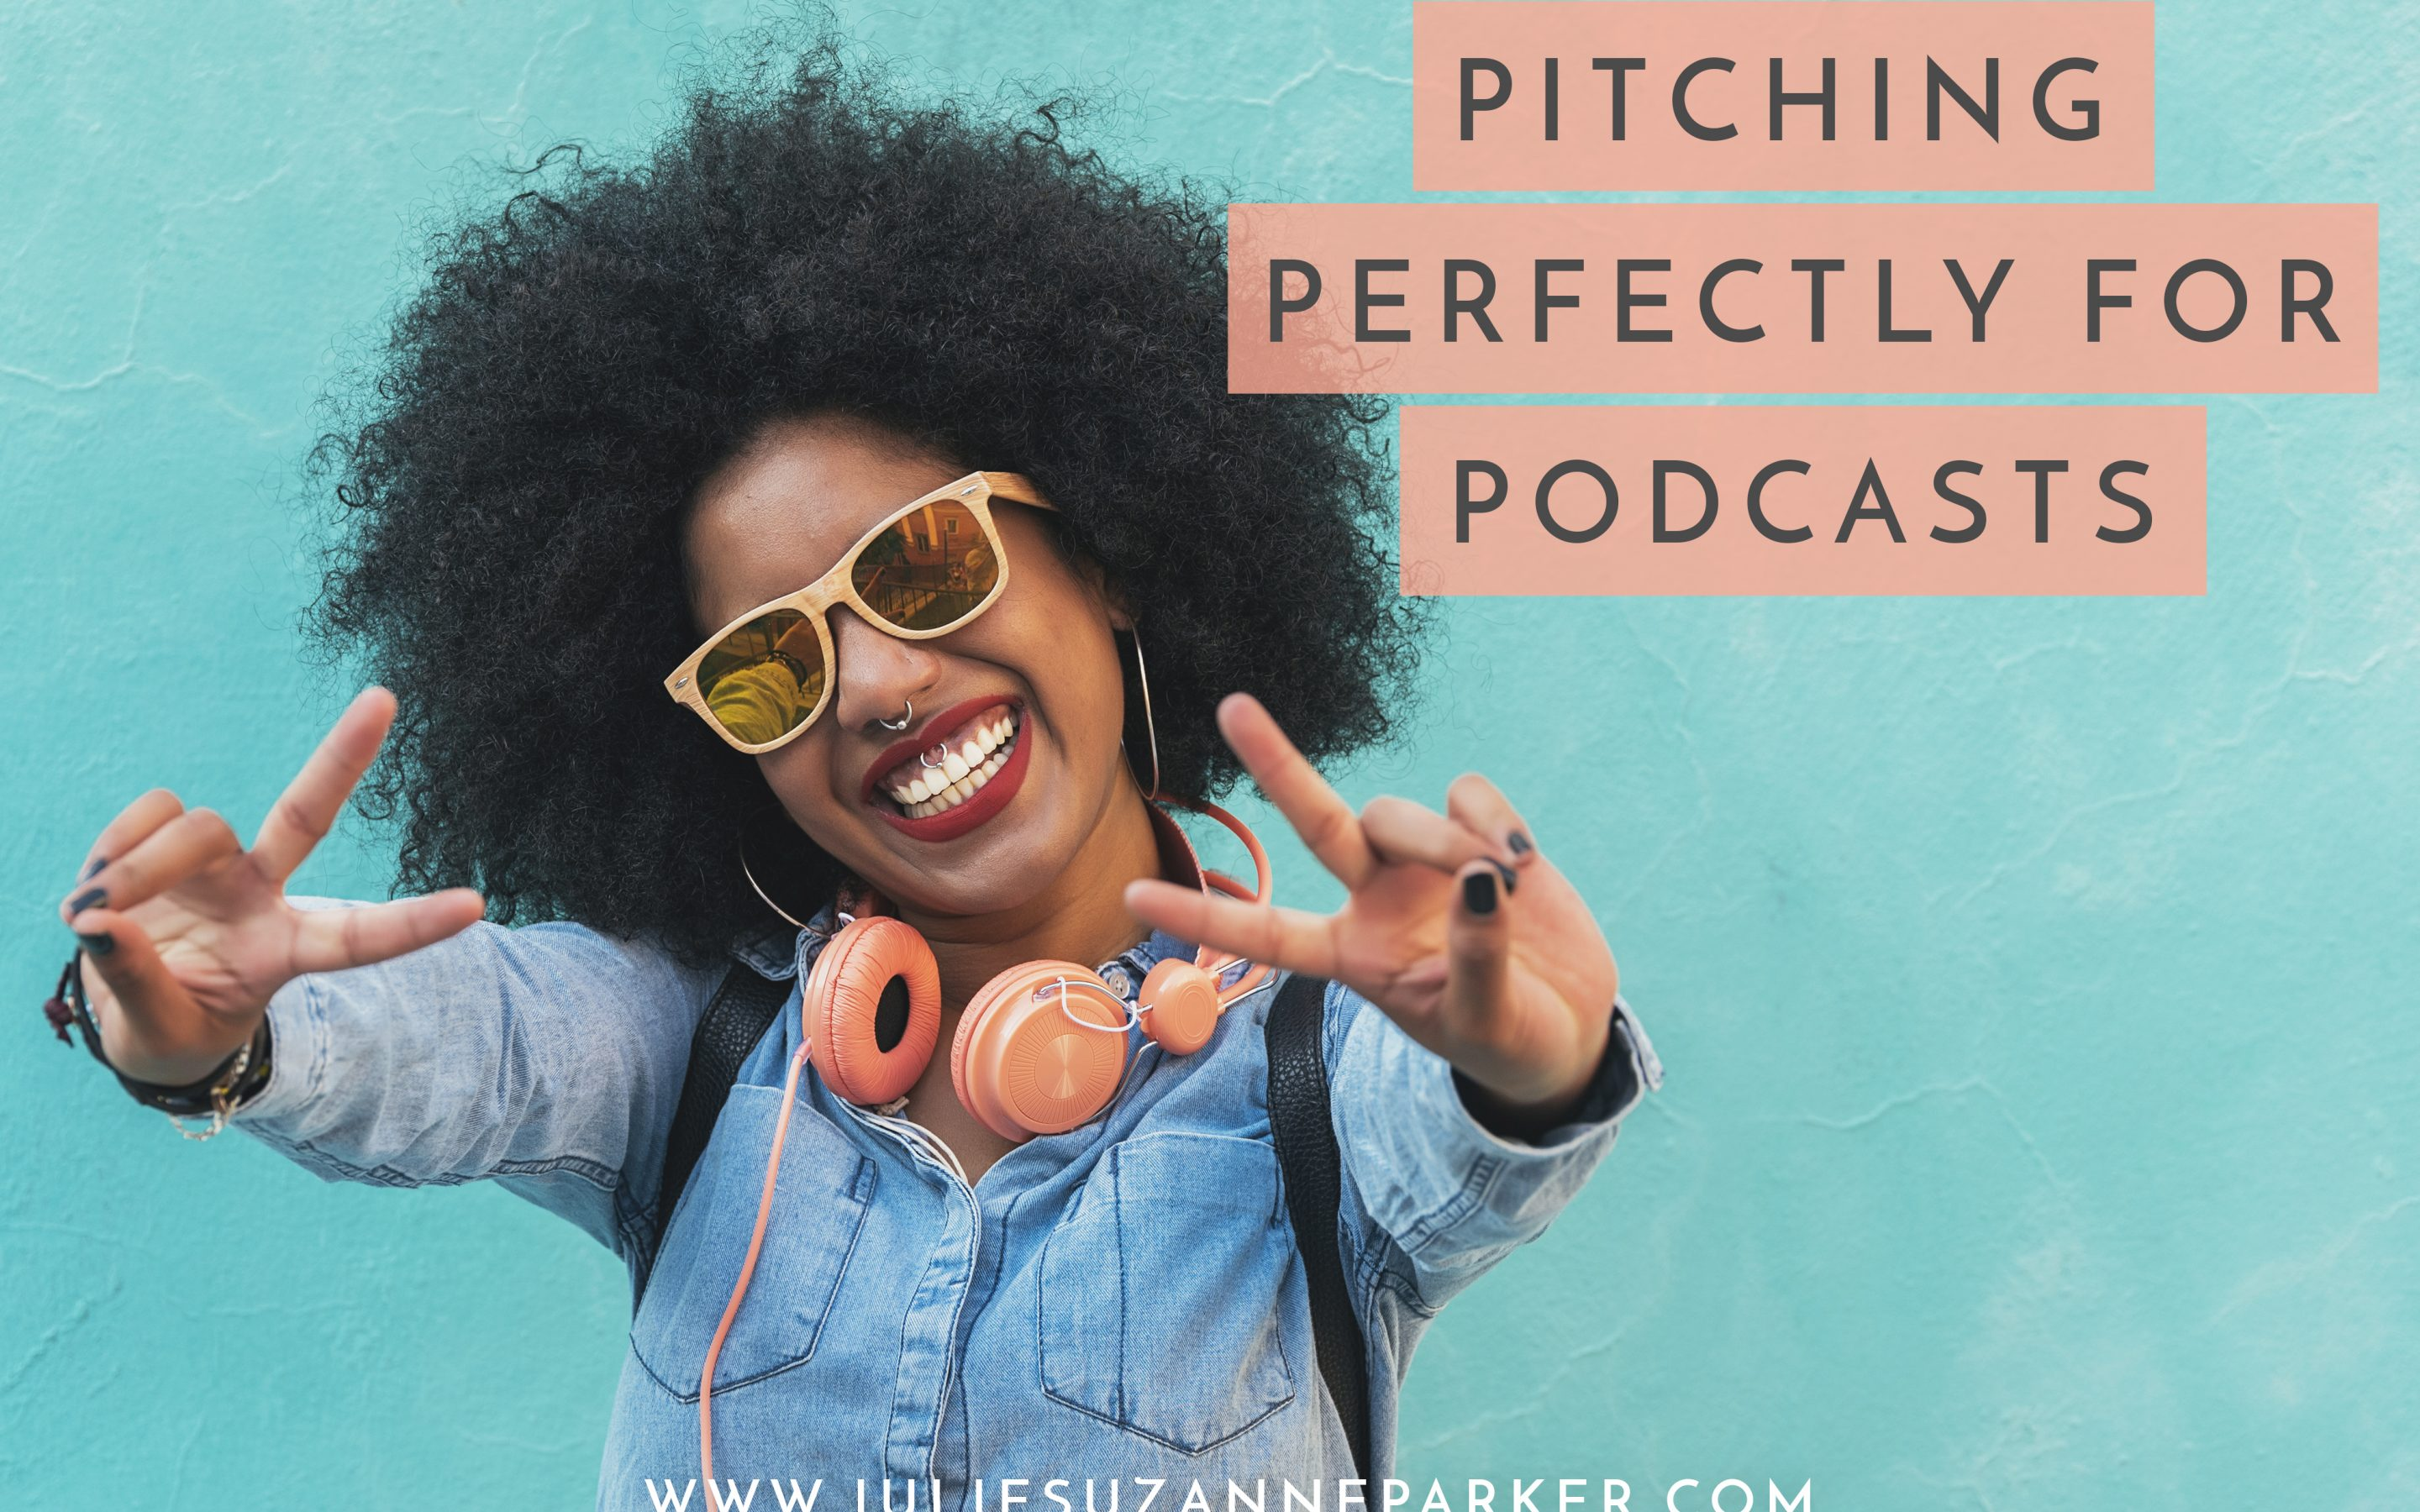 Pitching Perfectly to Podcasts